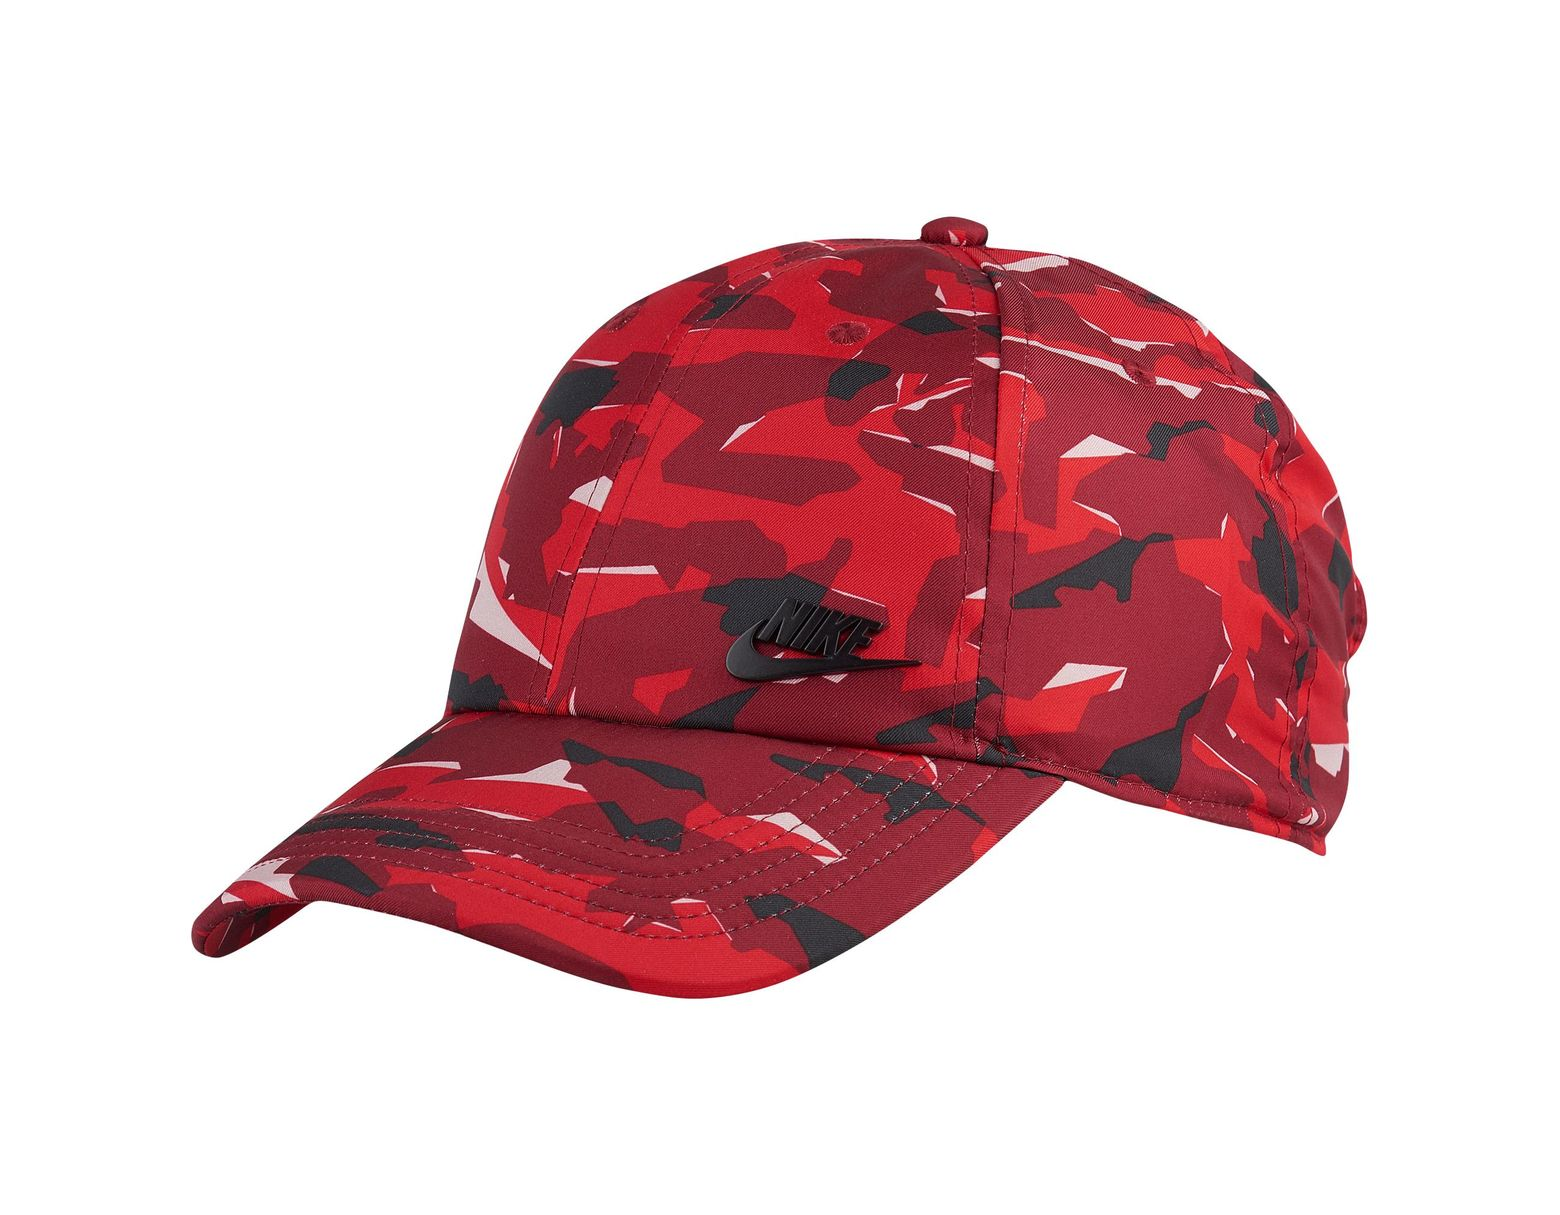 e612b5044 Men's Red H86 Metal Futura Cap